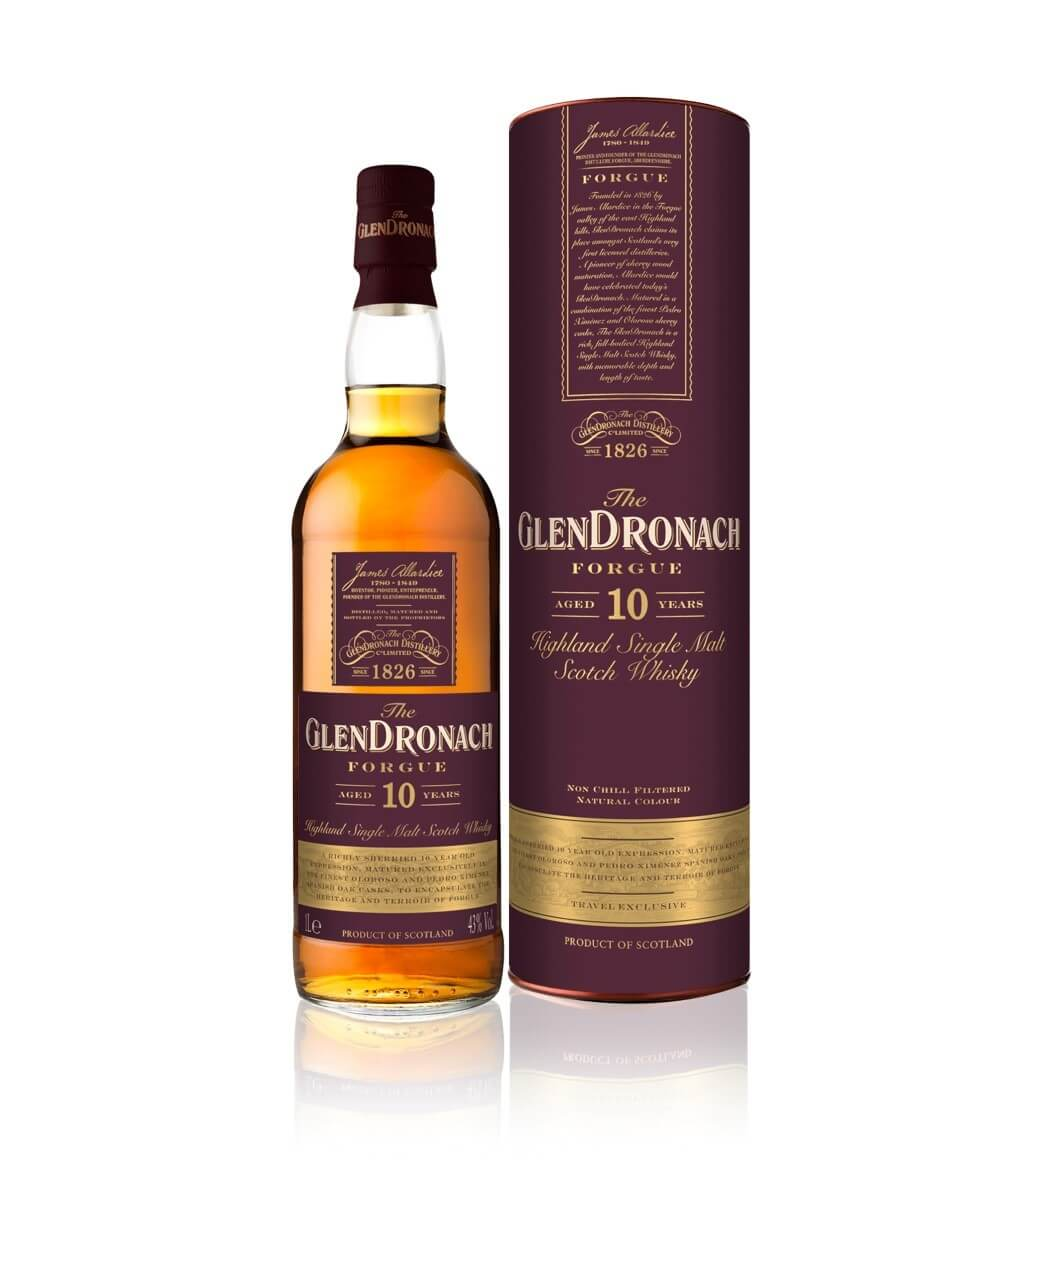 GlenDronach Forgue Aged 10 Years